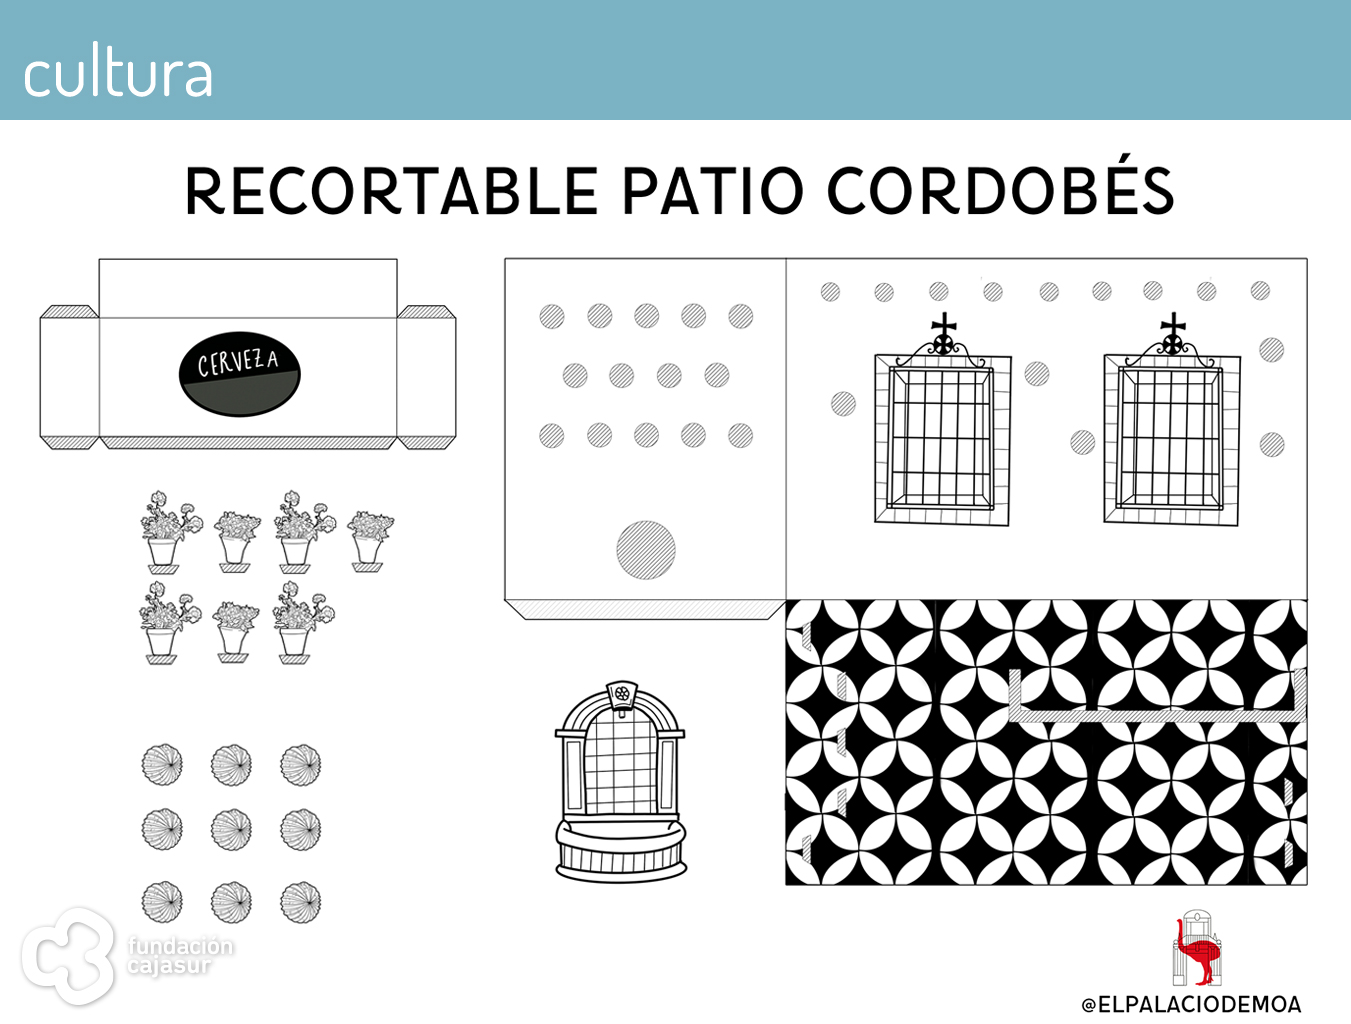 recortable patio cordobés